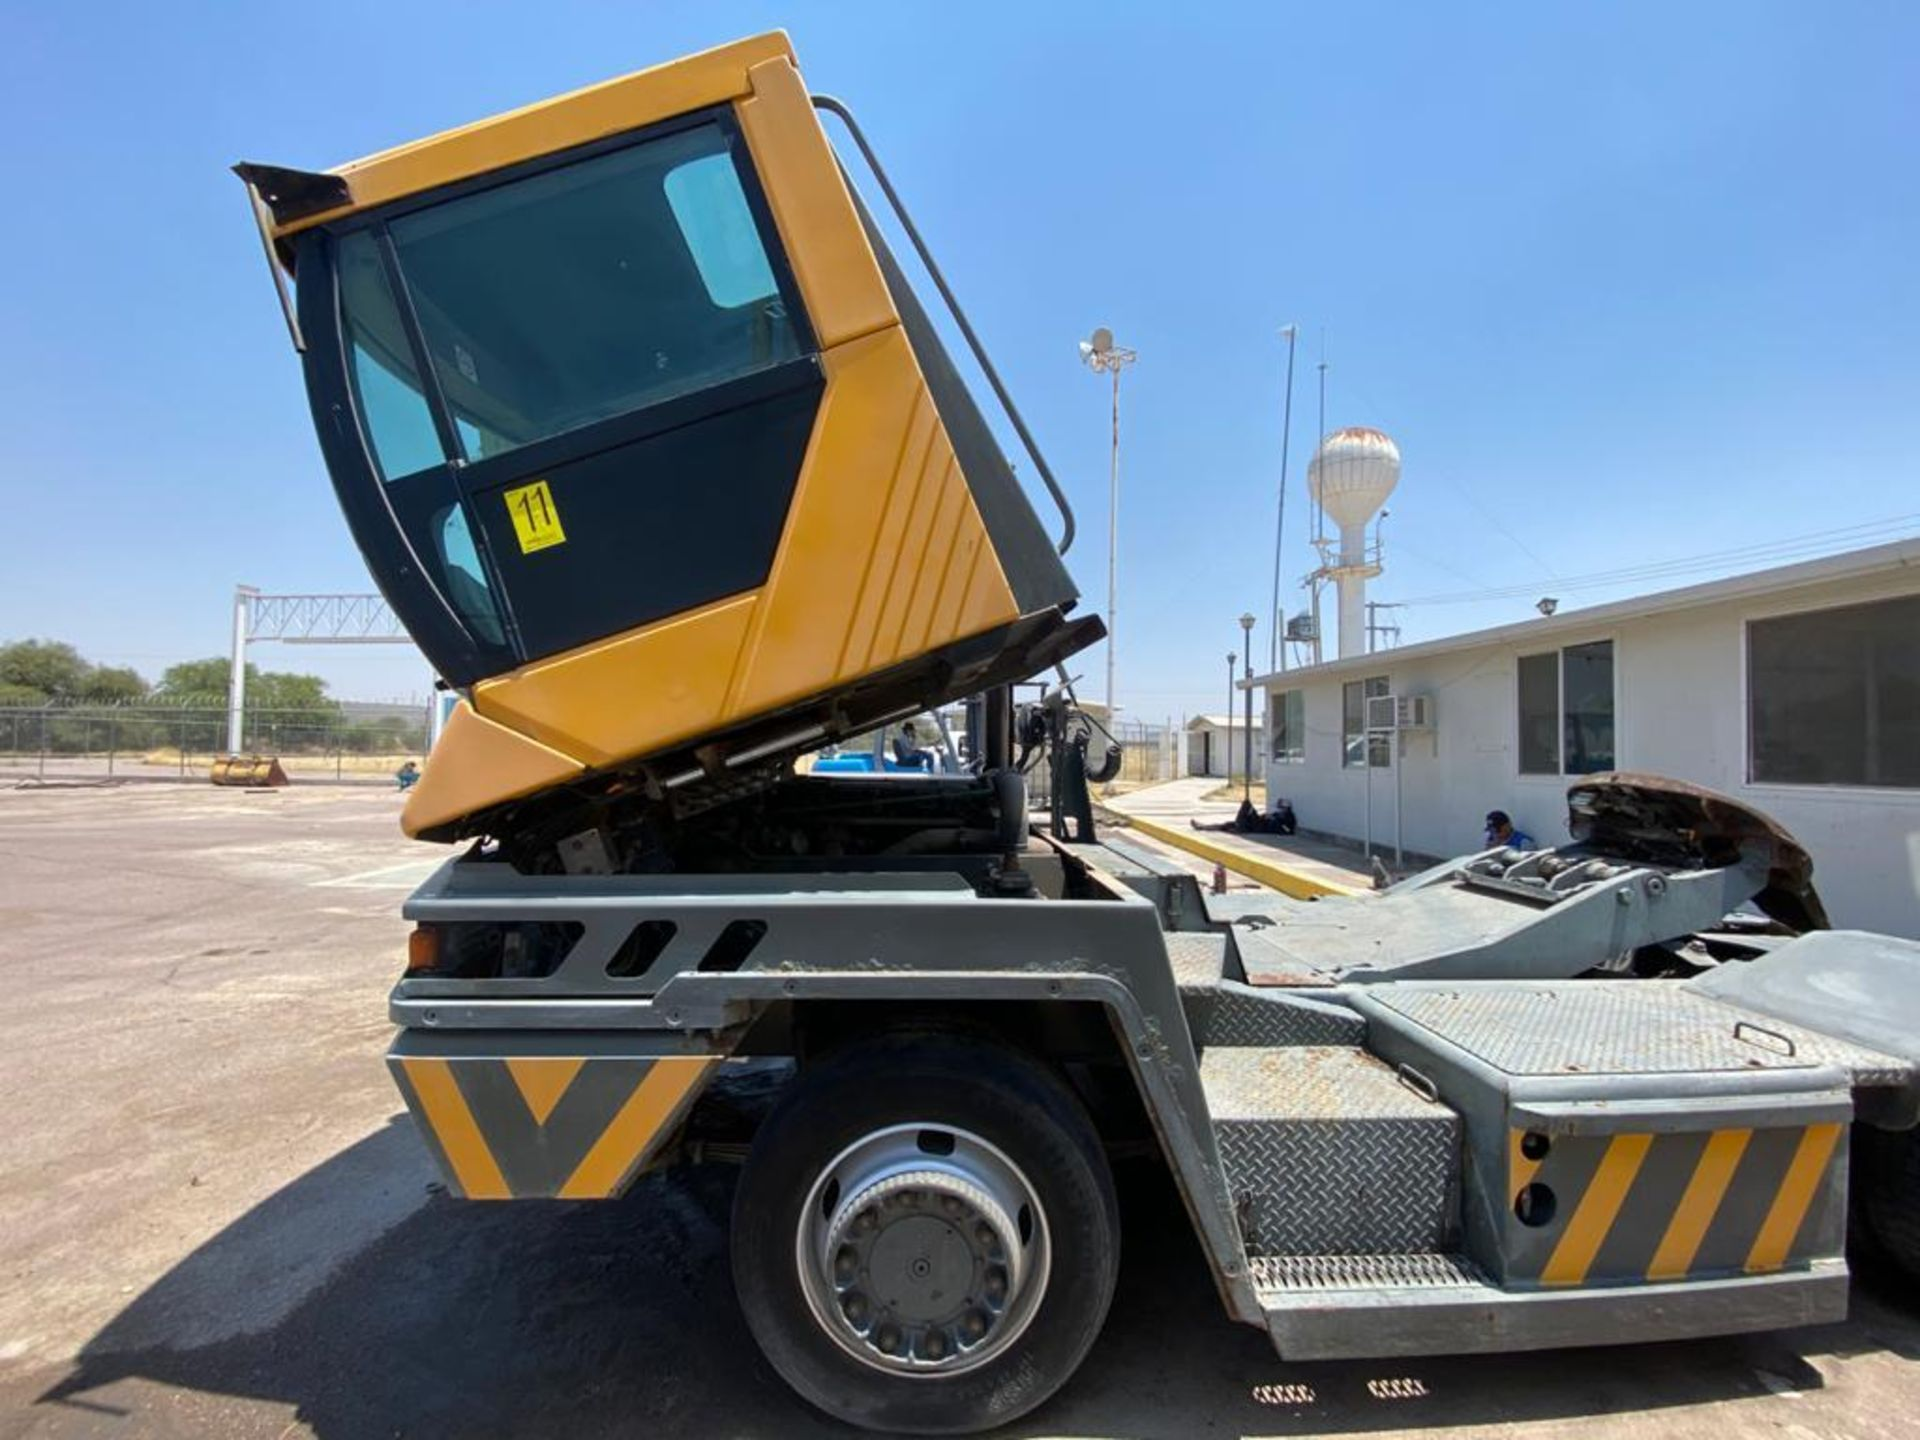 Terberg Capacity 2002 Terminal Tractor, automatic transmission, with Volvo motor - Image 34 of 57